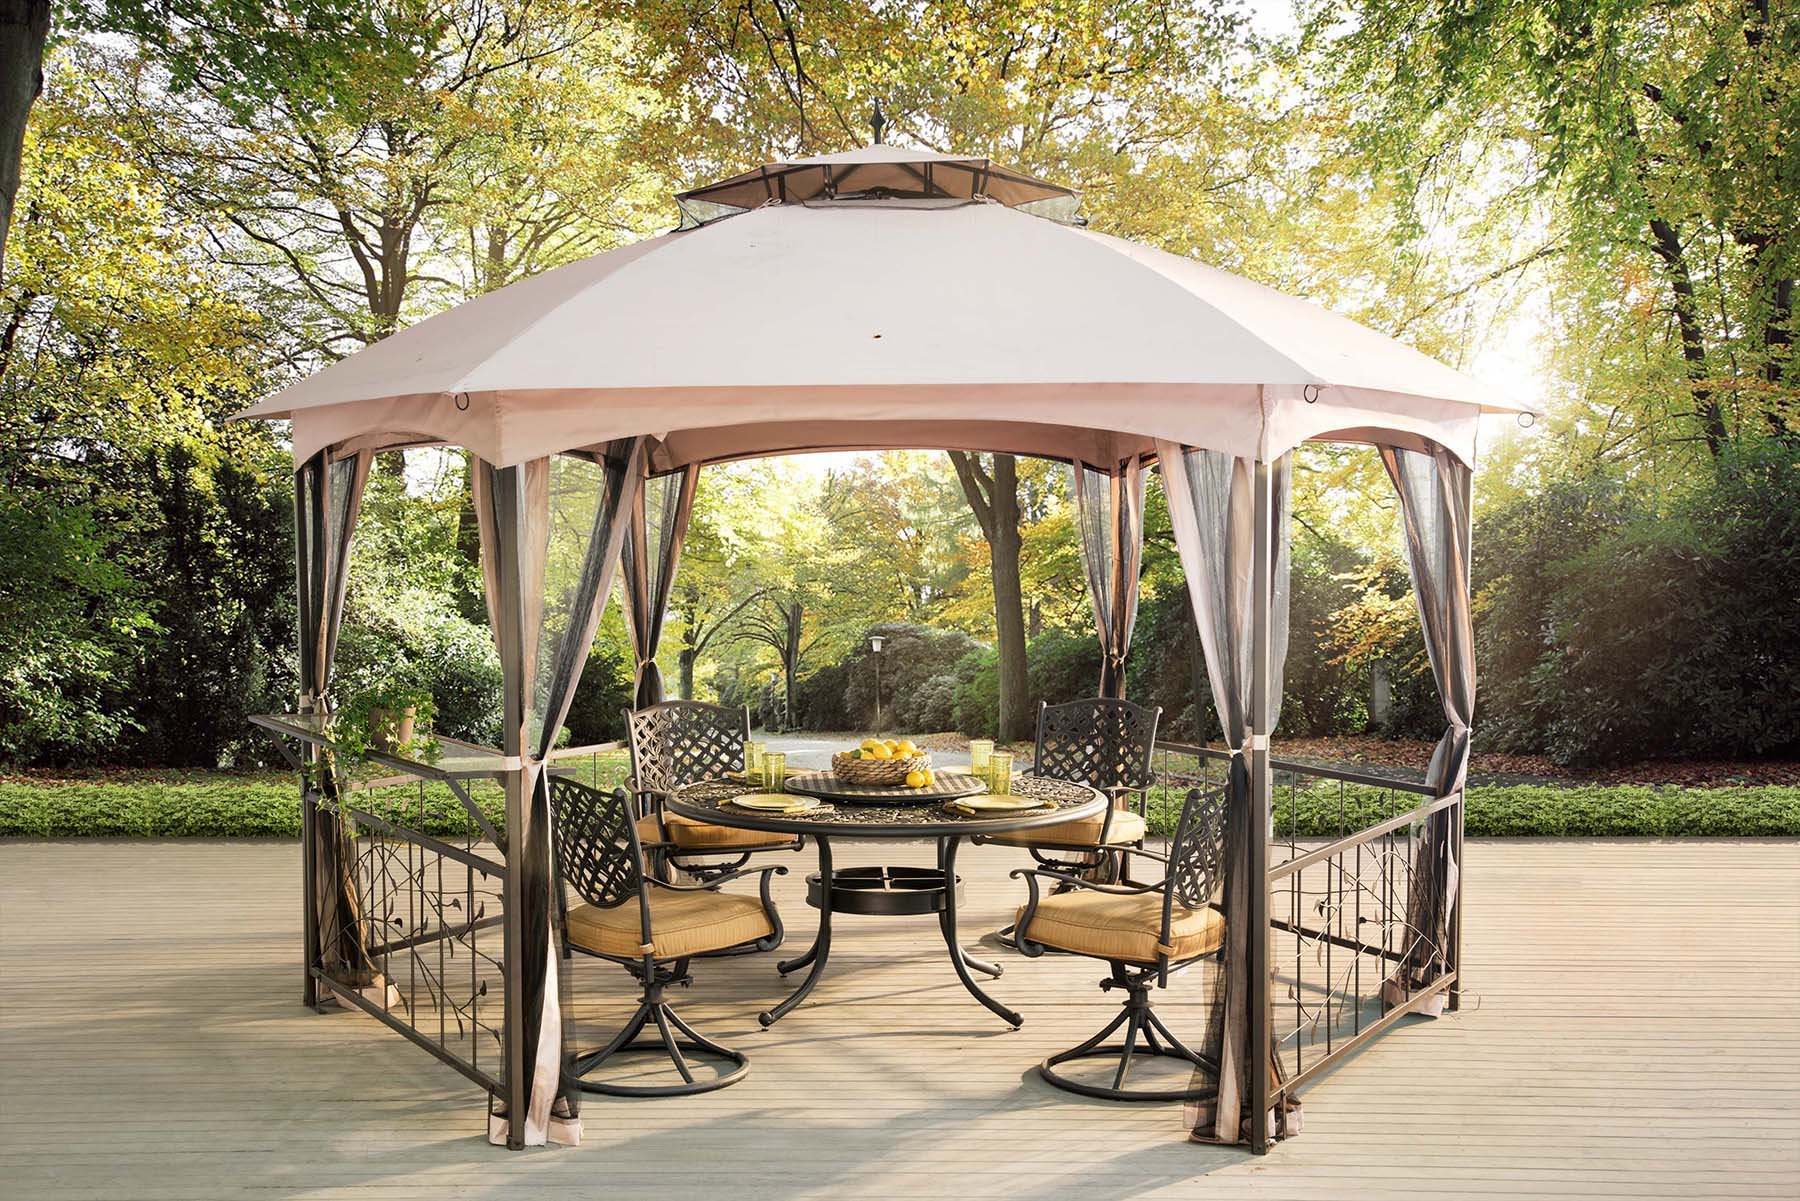 Cozy sunjoy gazebo for garden ideas with sunjoy hardtop gazebo and sunjoy grill gazebo